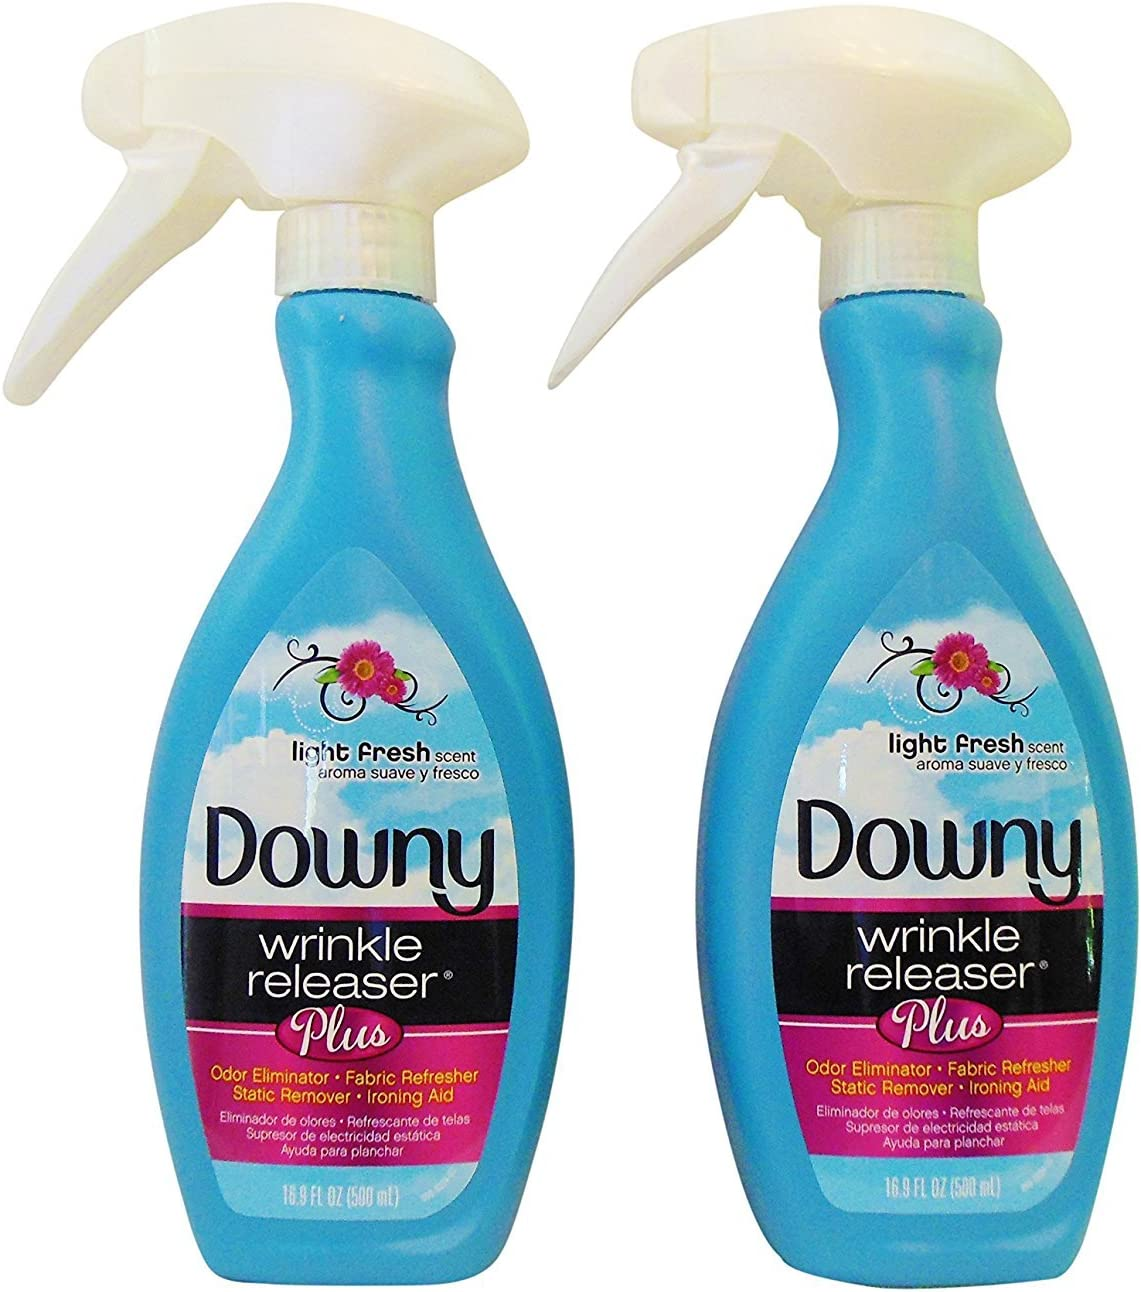 Downy Wrinkle Releaser Plus, Light Fresh Scent, 16.9 Fl. Oz (Pack of 2)